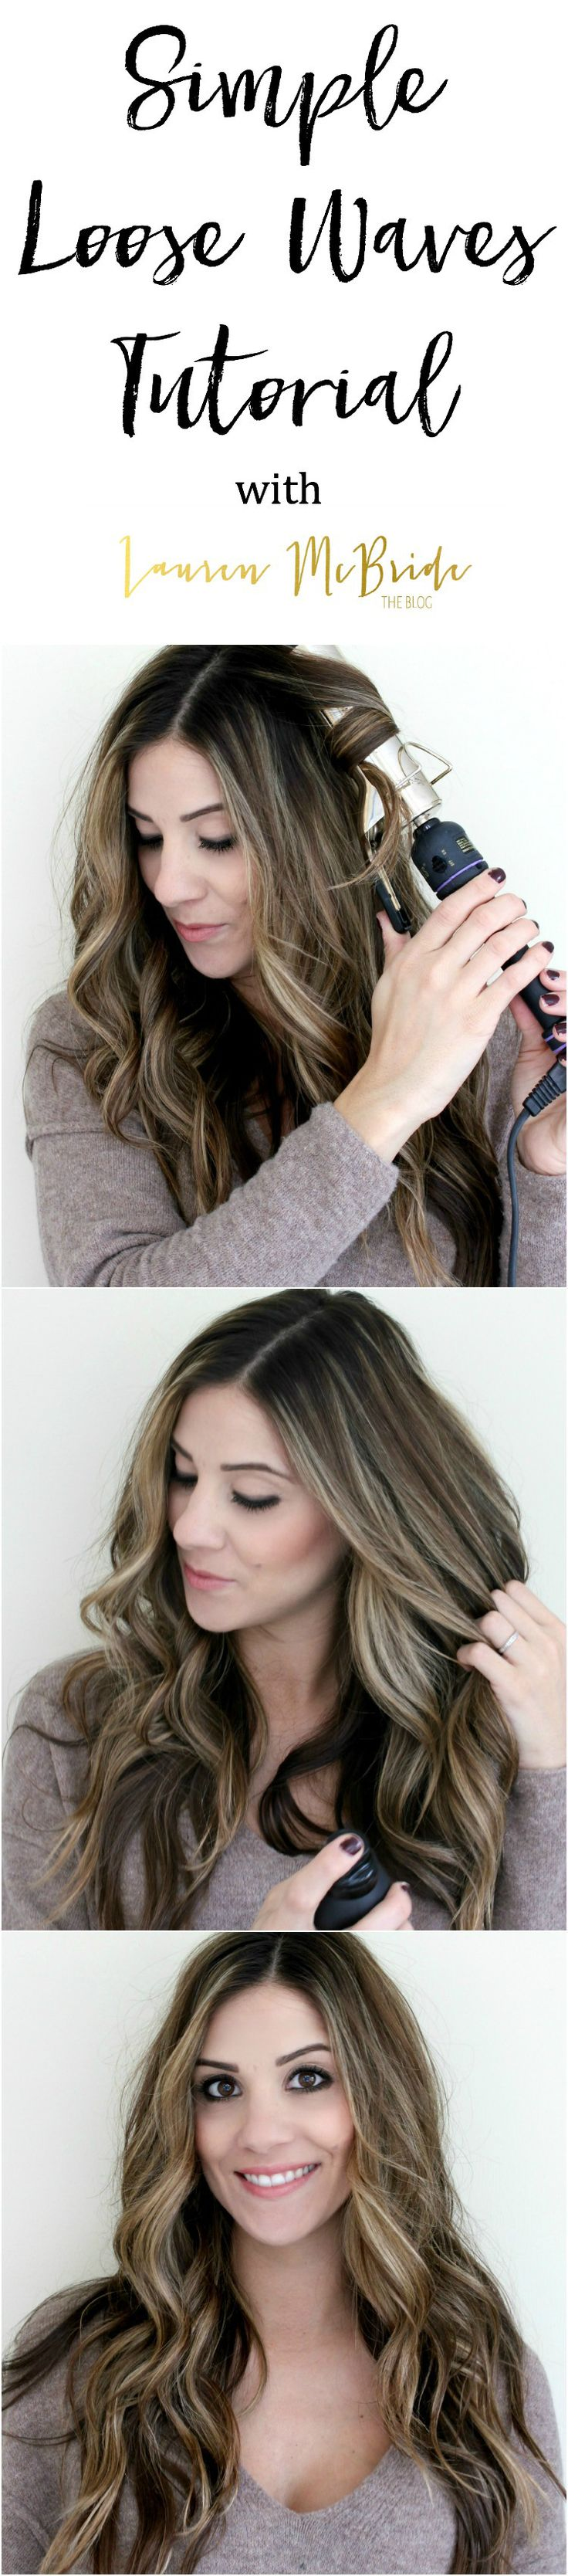 easy updos for curly hair tutorial